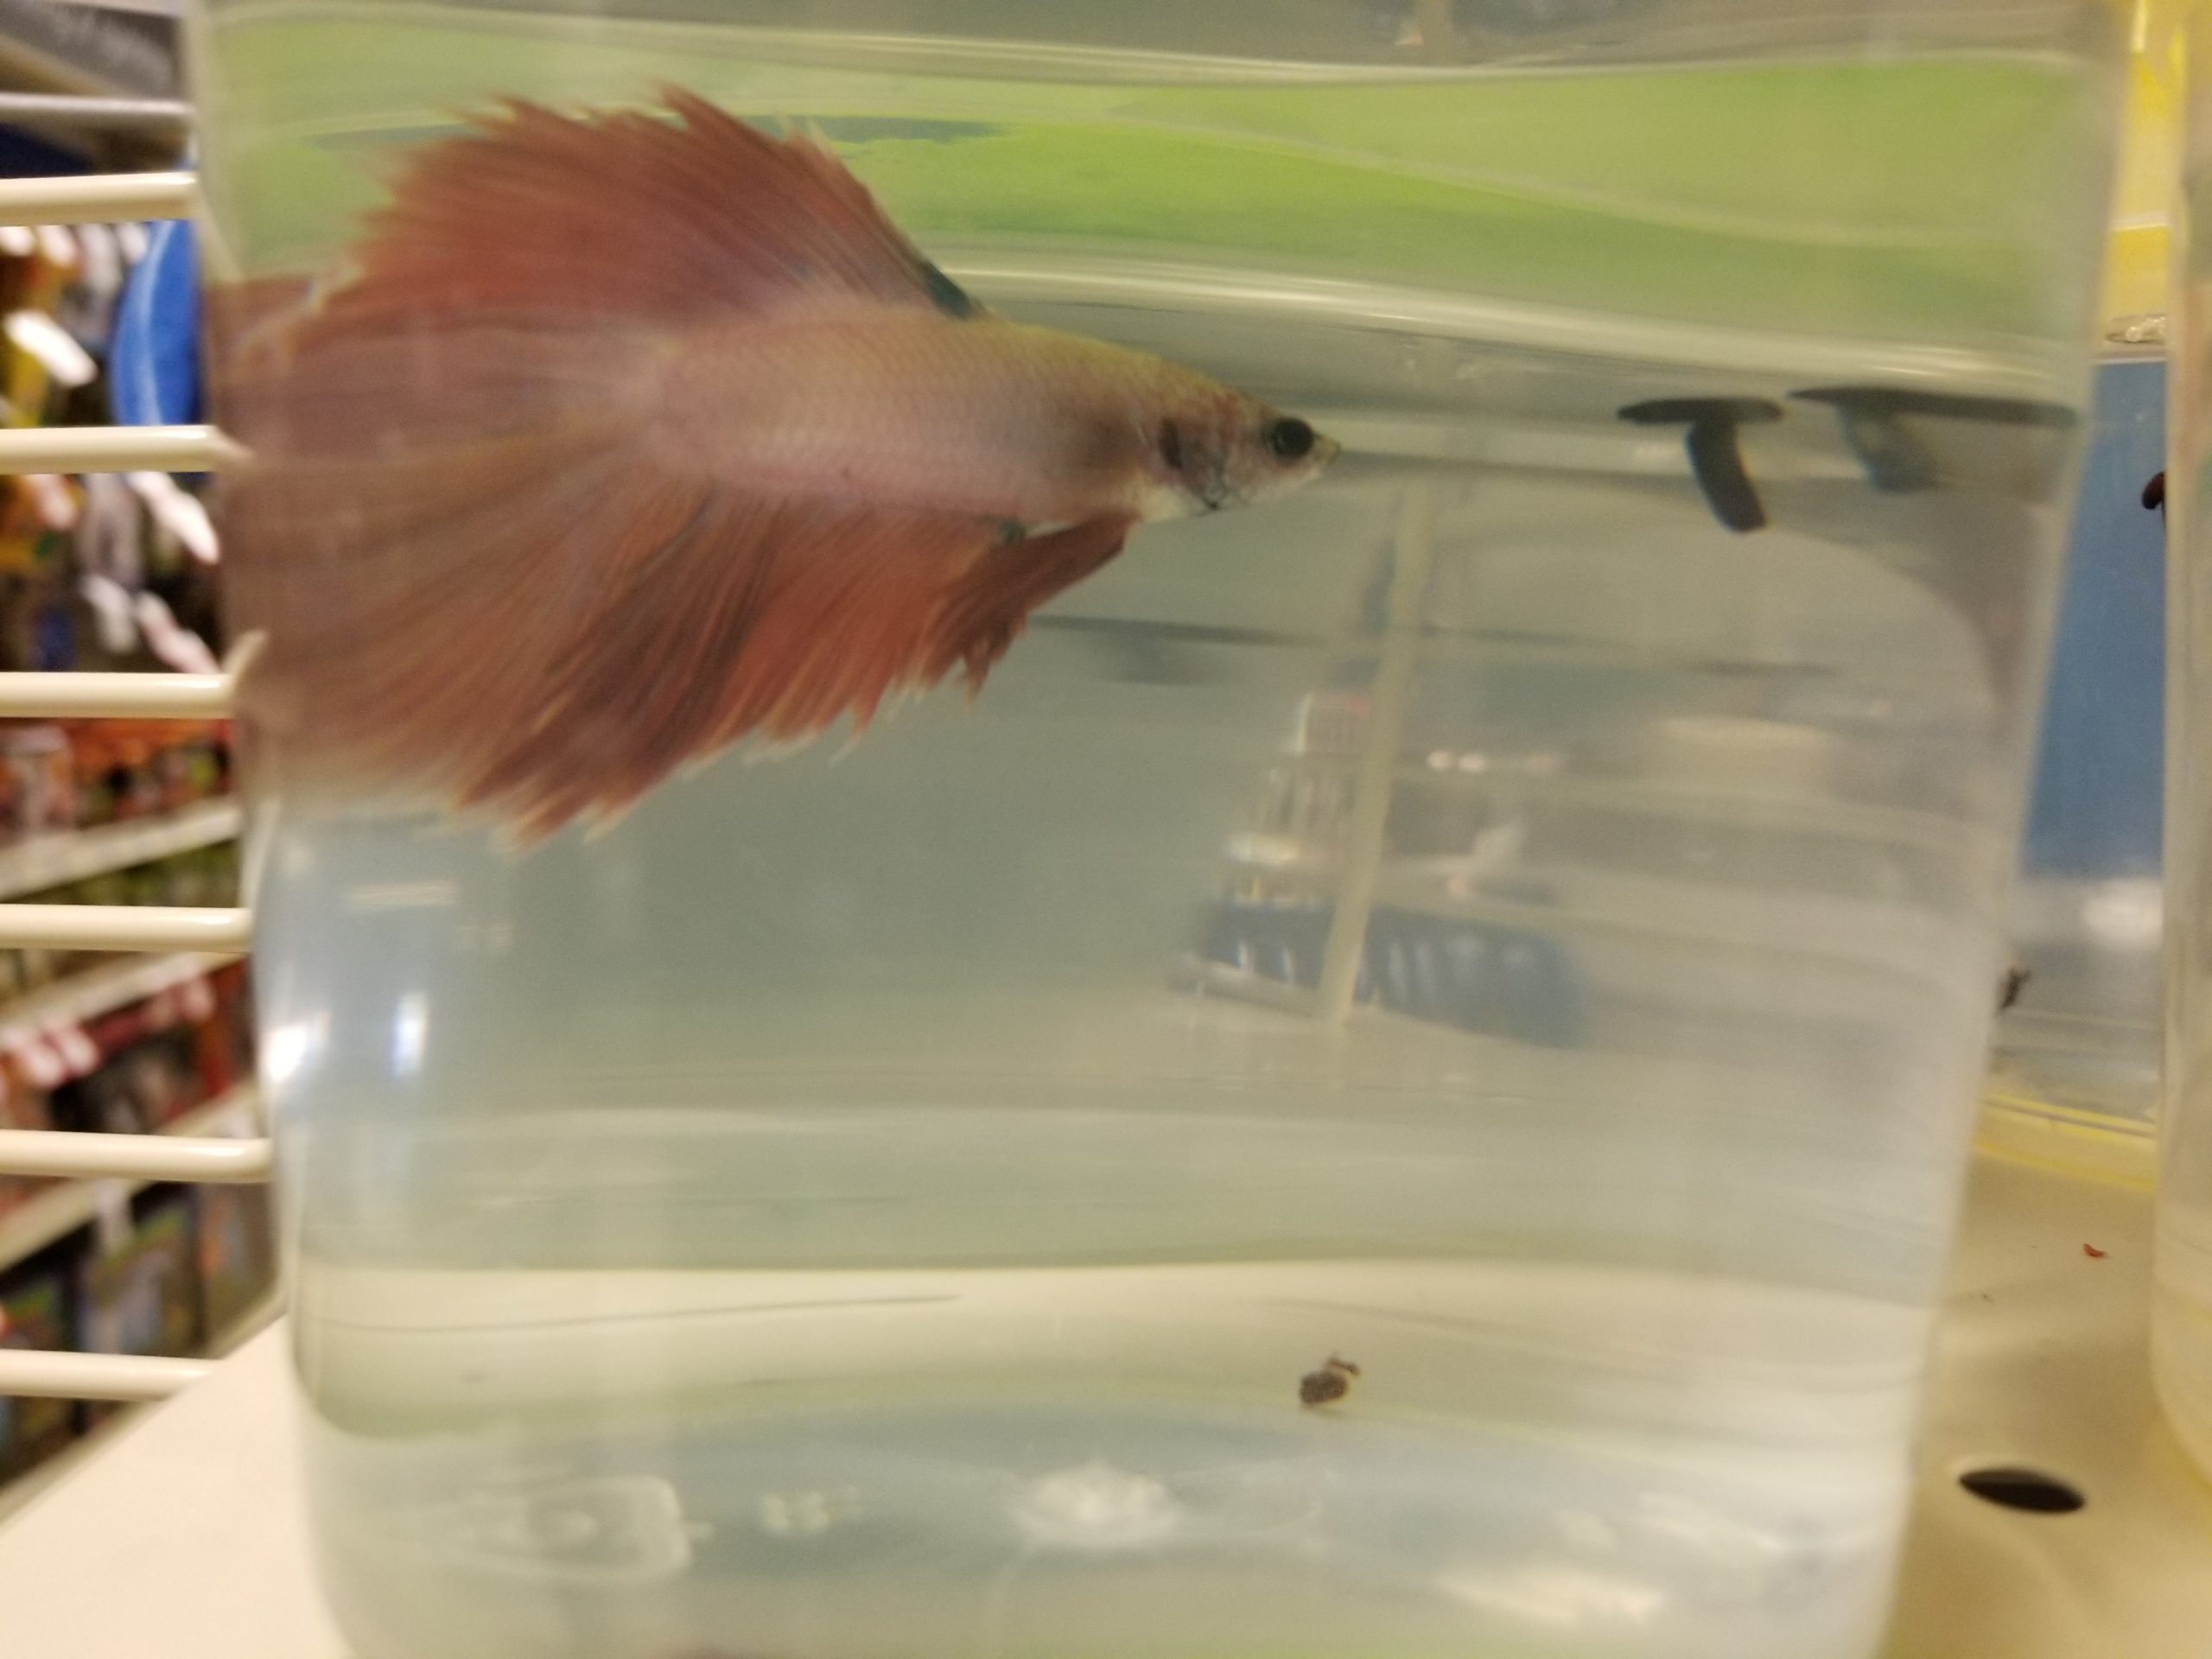 betta fish on a cup